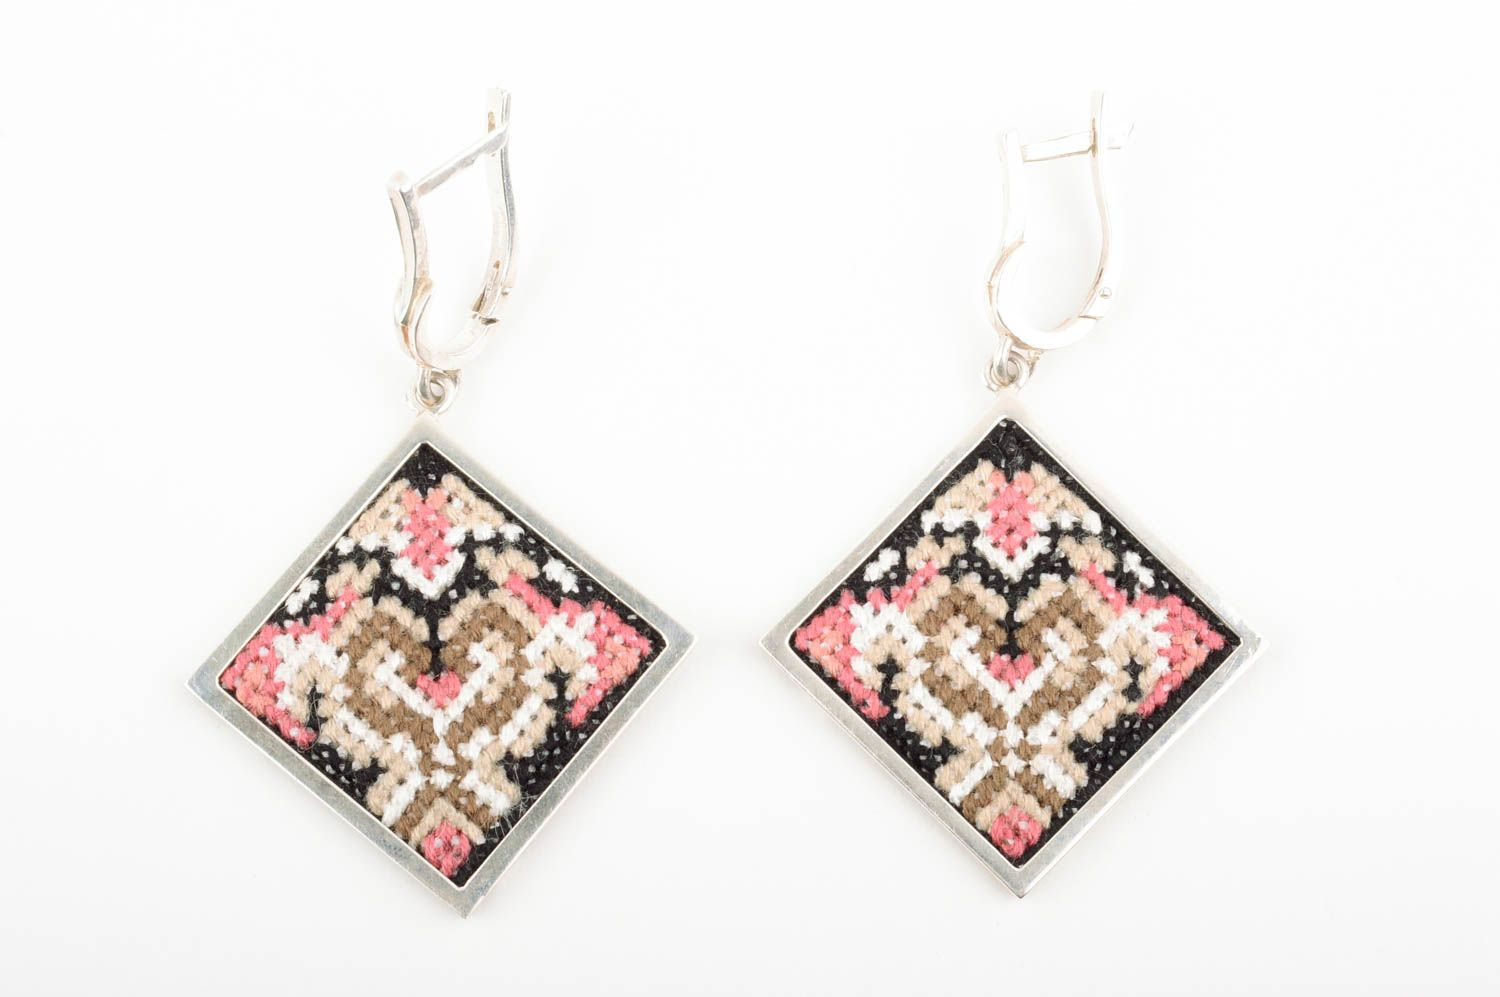 Stylish earrings handmade earrings handcrafted jewelry embroidery designs photo 1